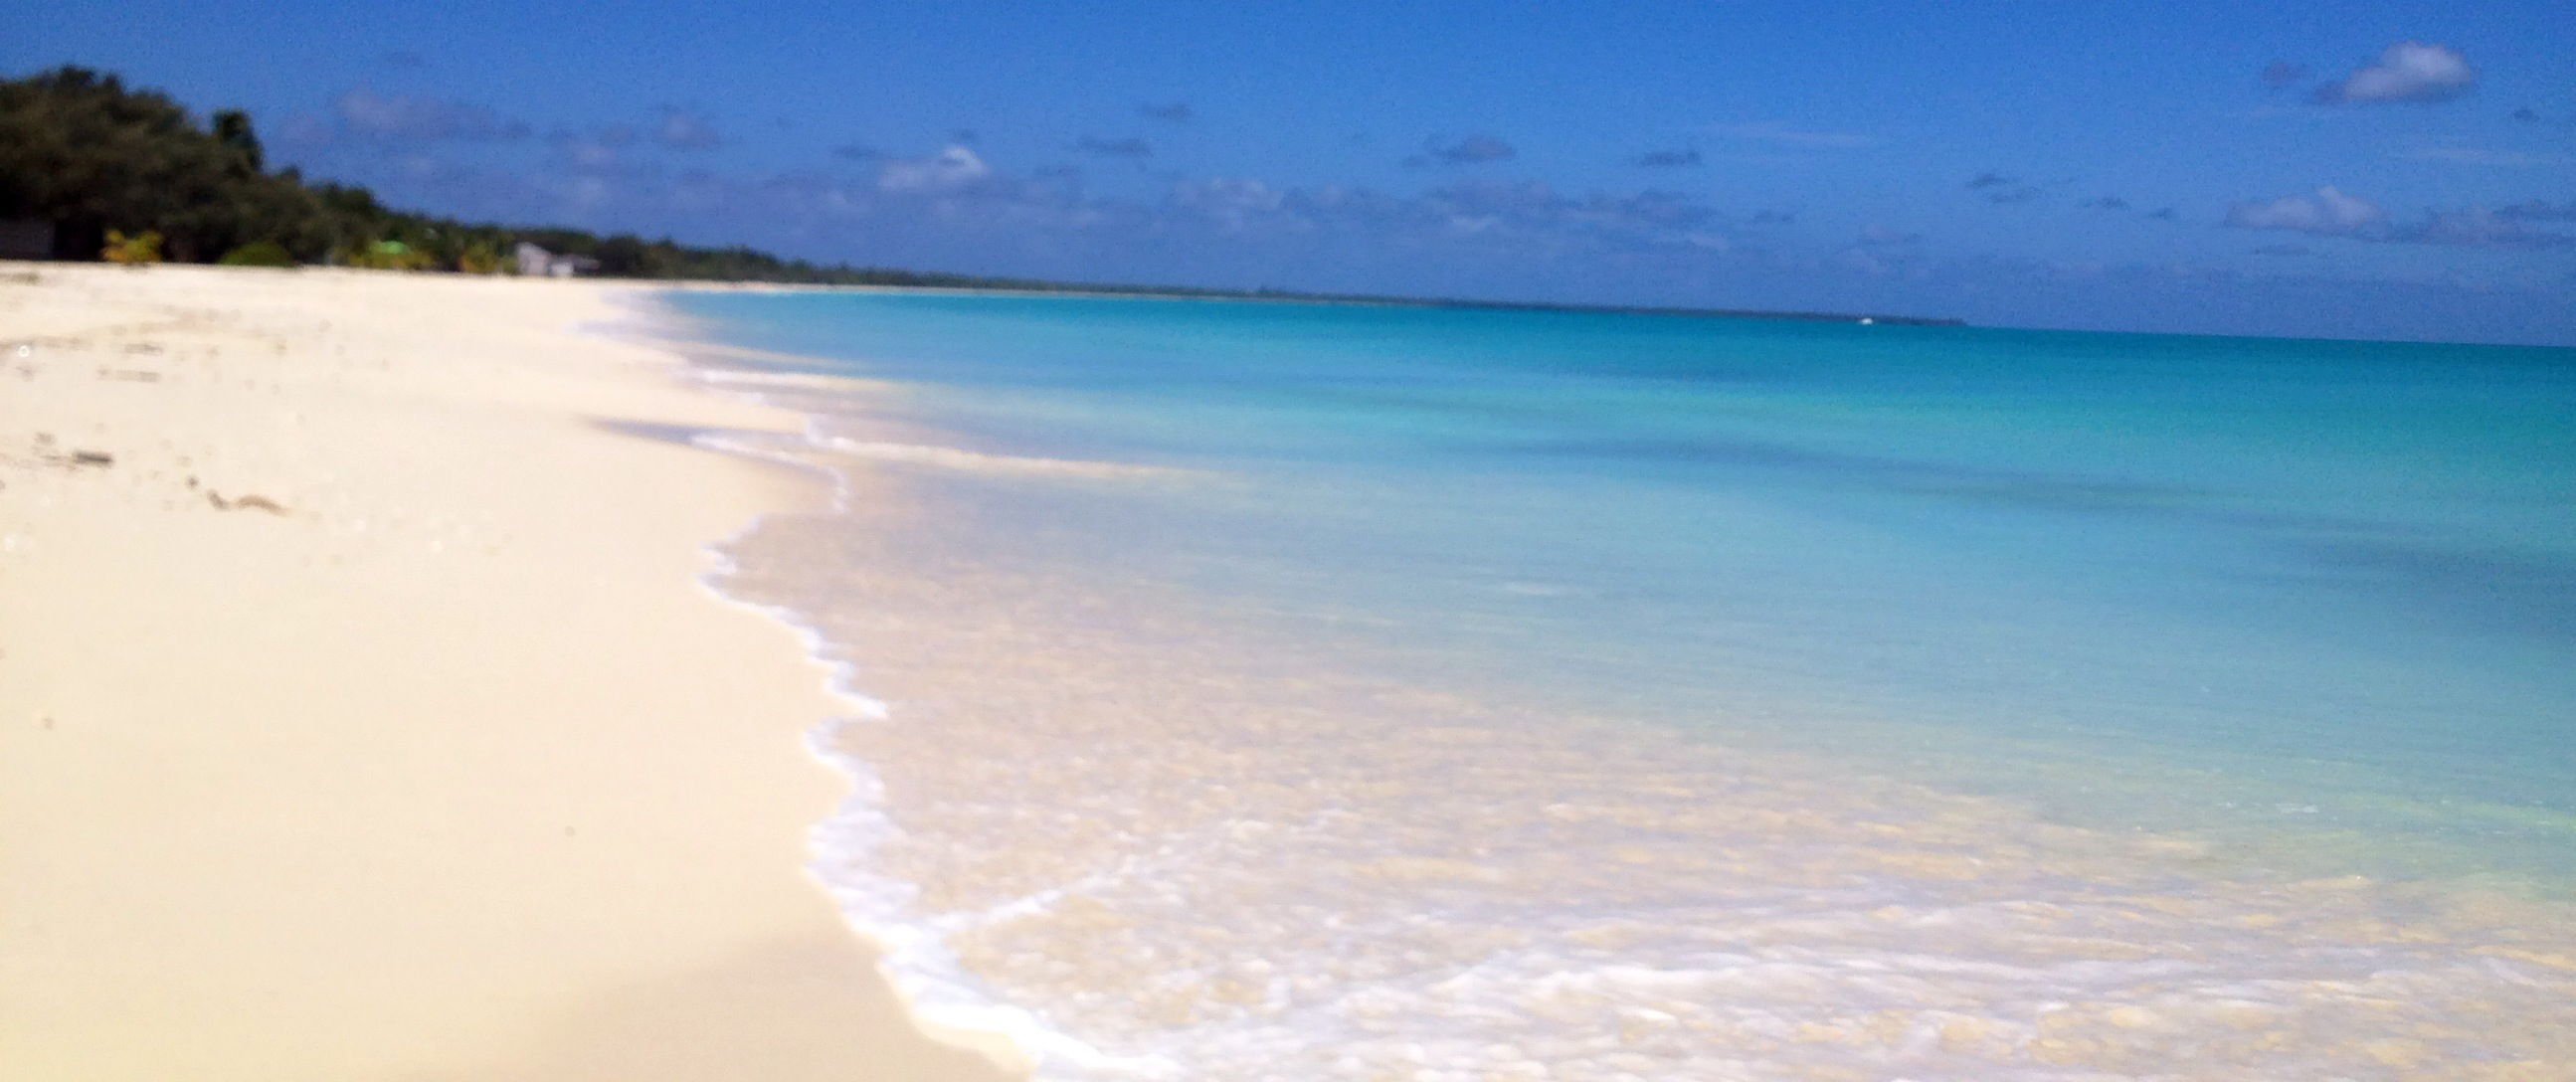 Ouv a the island closest to paradise new caledonia today for The caledonia